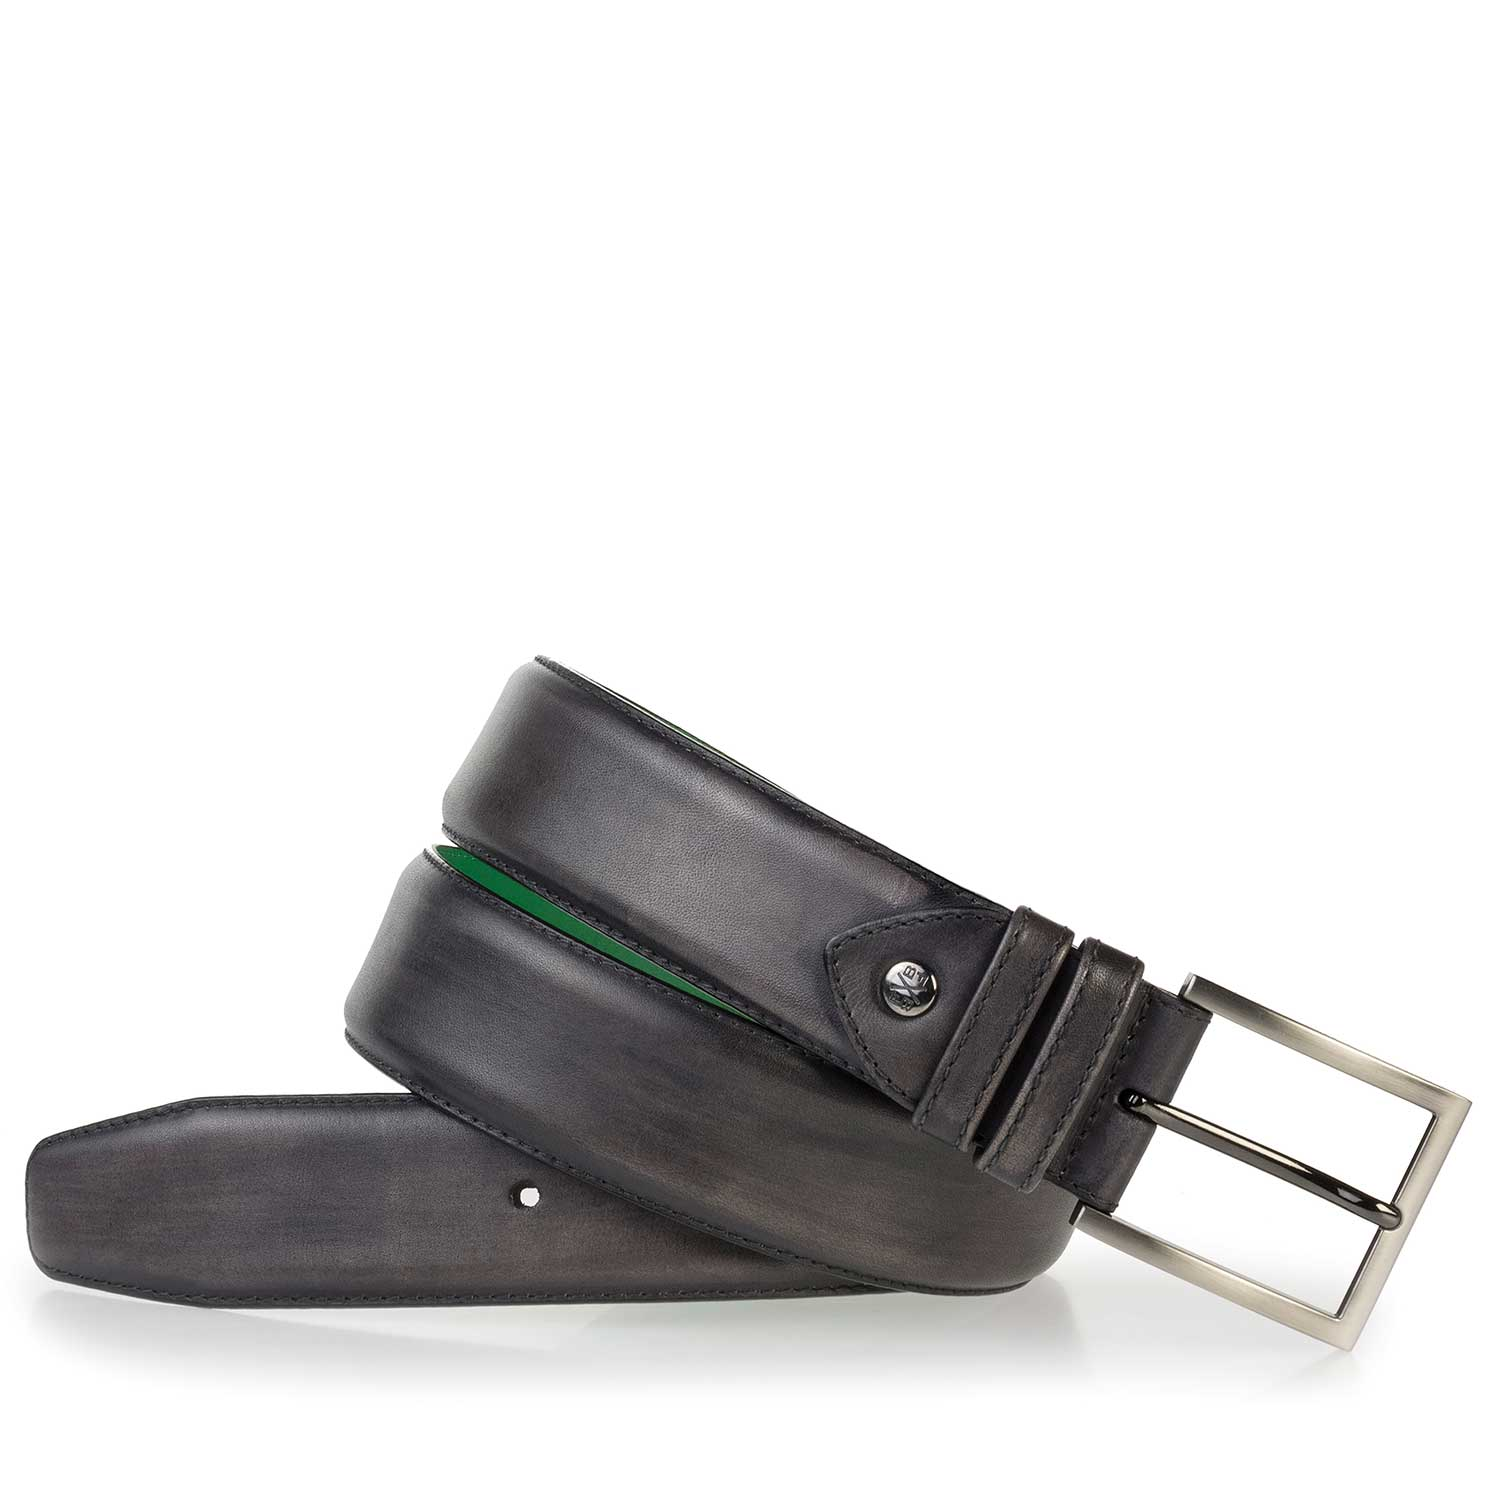 75178/03 - Anthracite grey leather belt